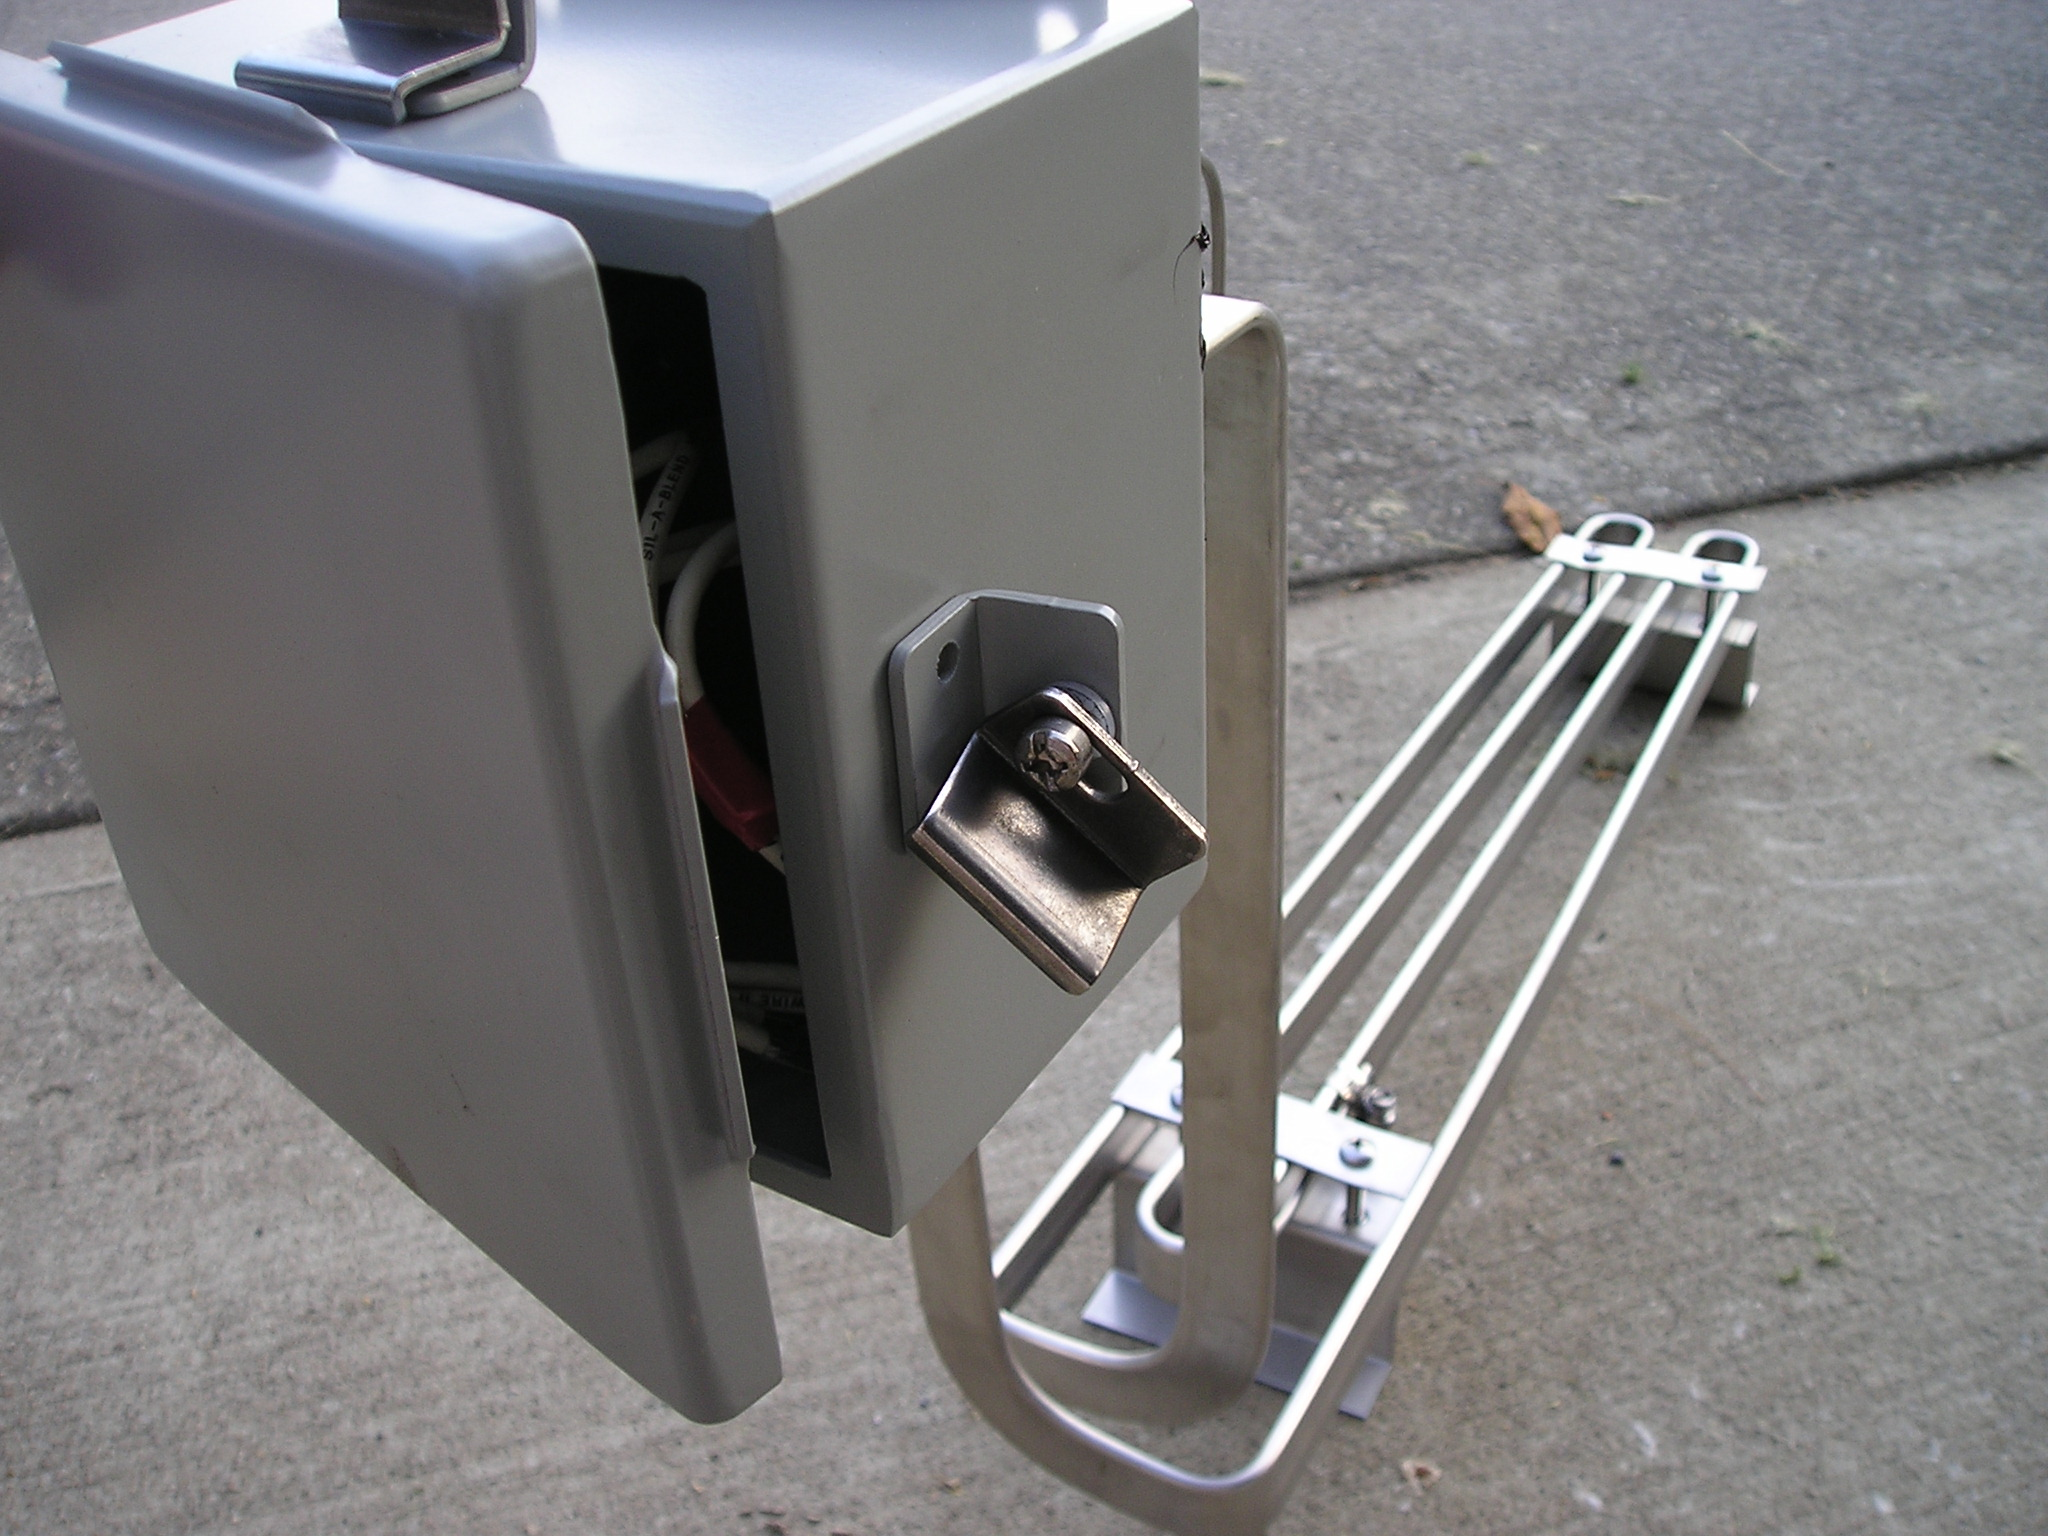 Over-the-side tubular heater with accompanying control box.